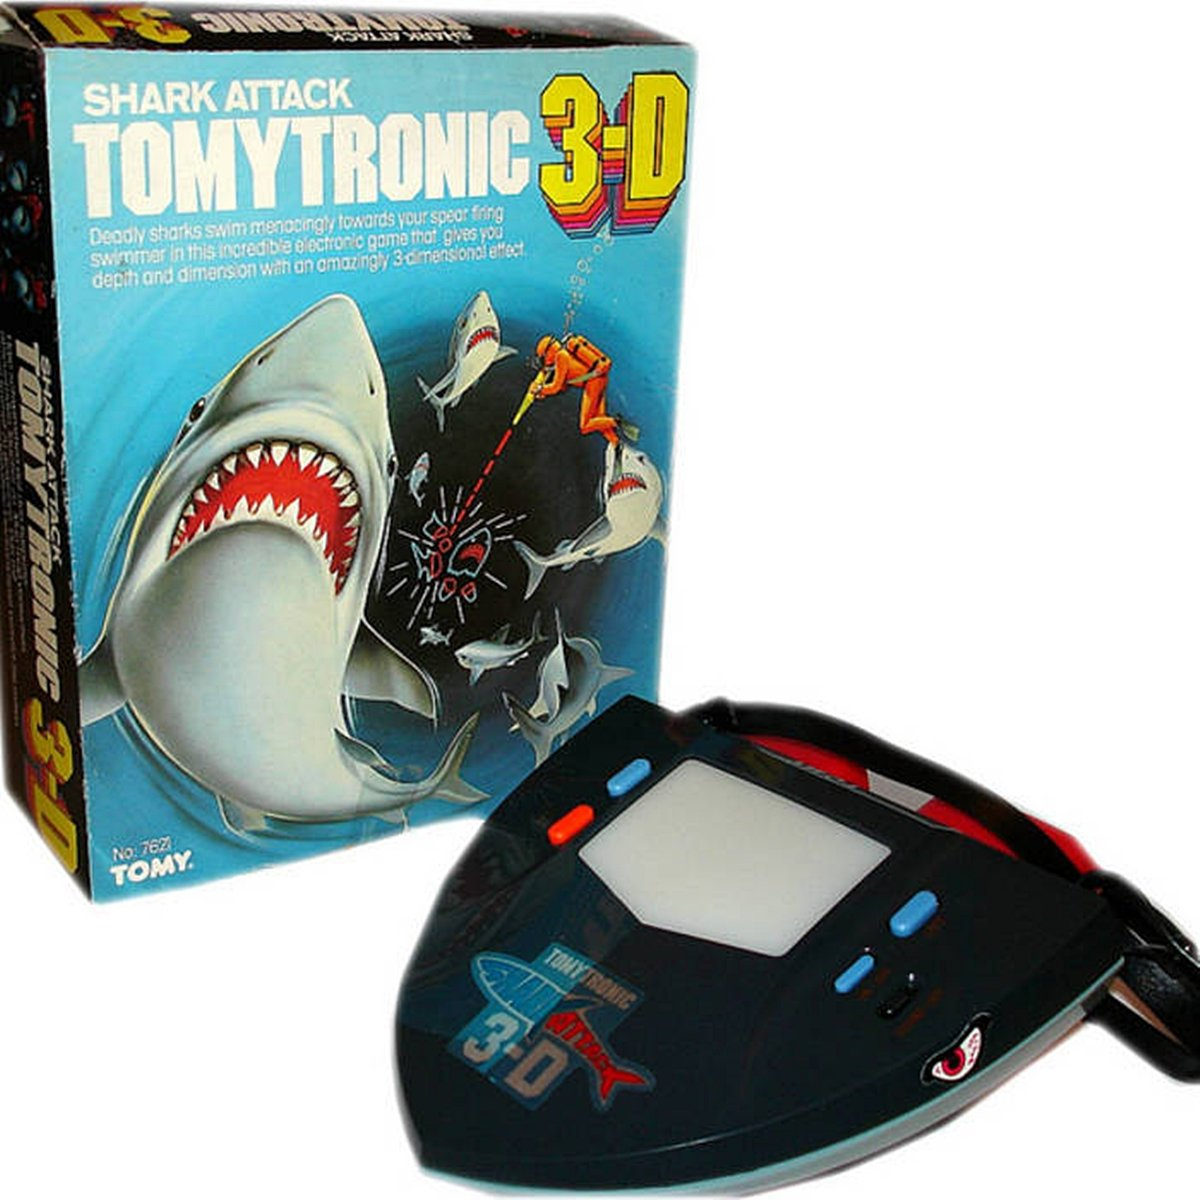 TOMYTRONIC3 12 Of The Best Handheld Electronic Games From The 1980s